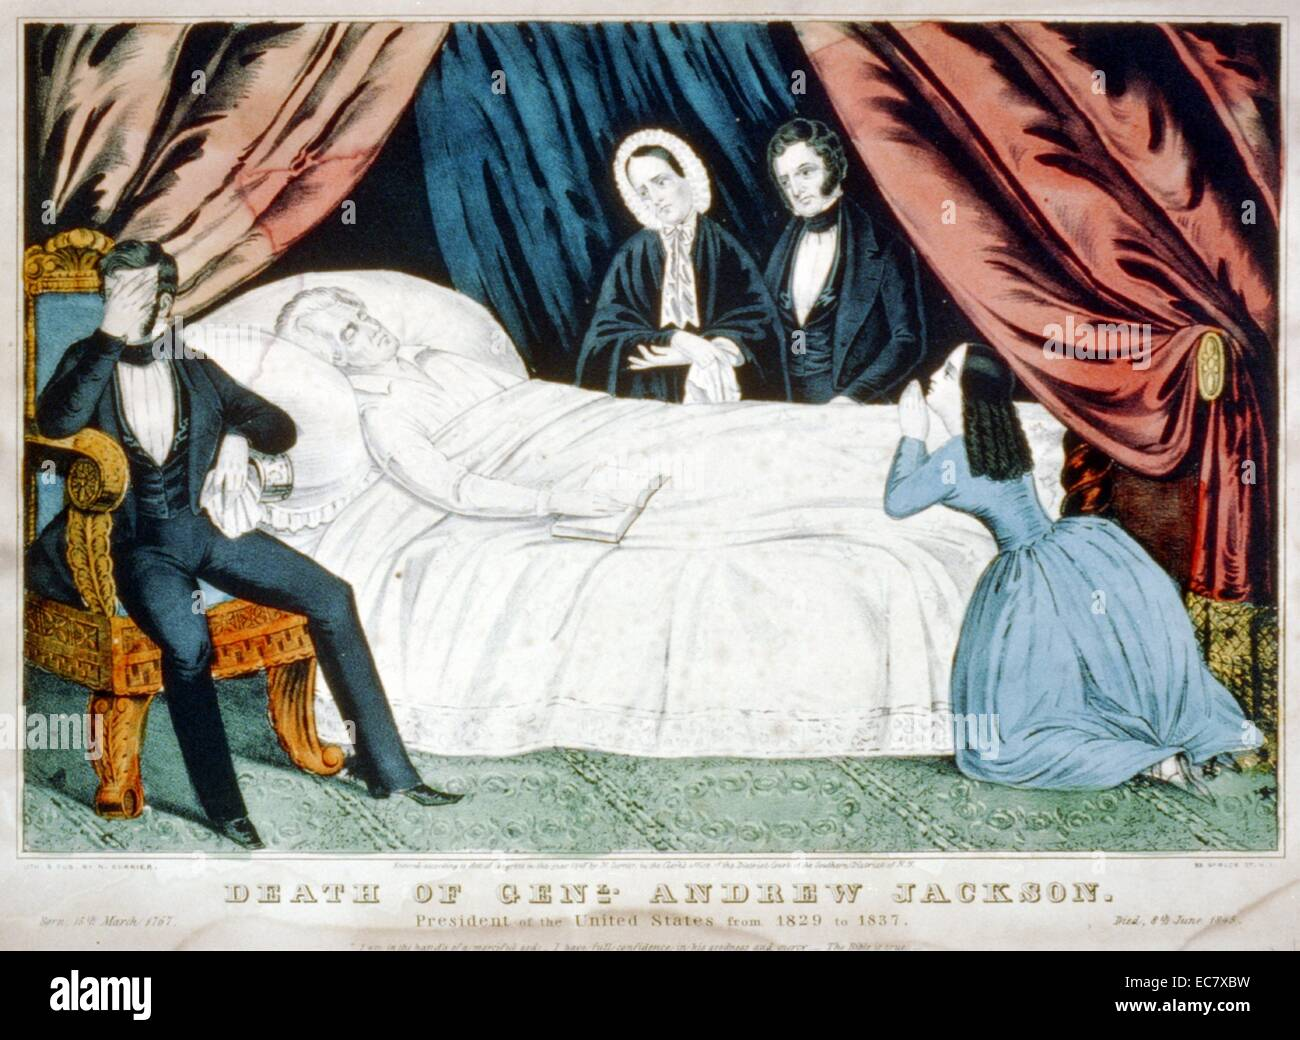 The death of Andrew Jackson - Stock Image